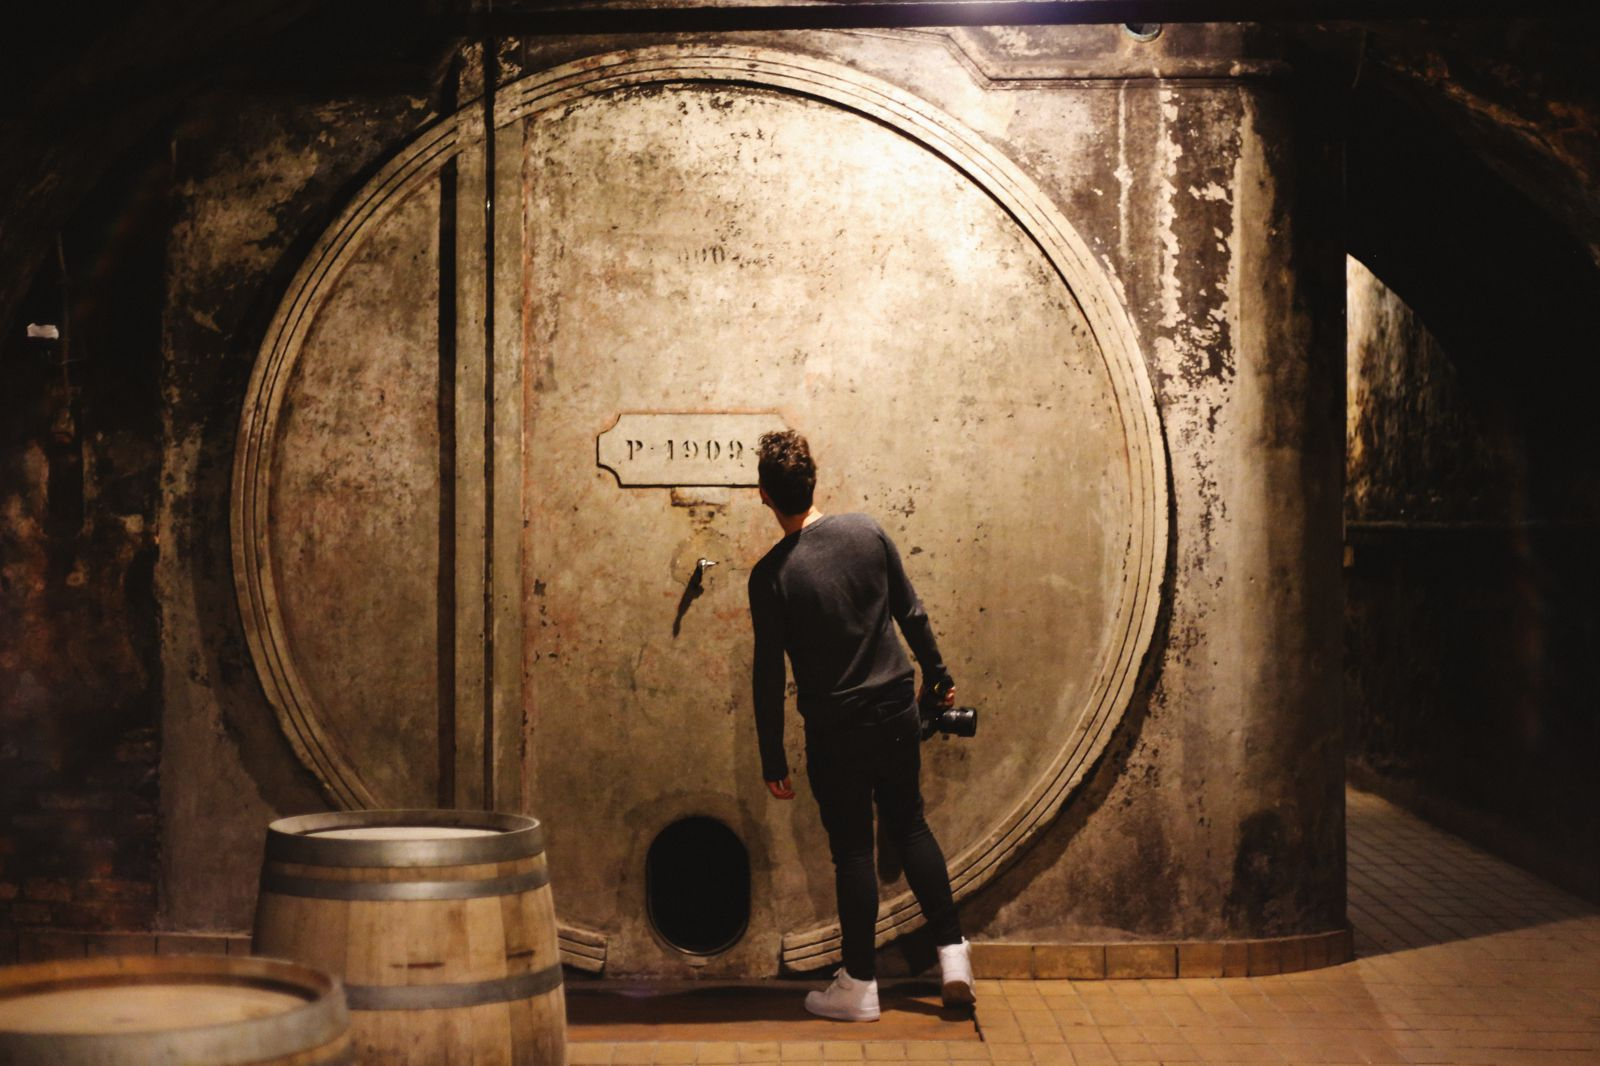 There's A Big Reason You Should Visit Slovenia This Year - The Wine! (12)